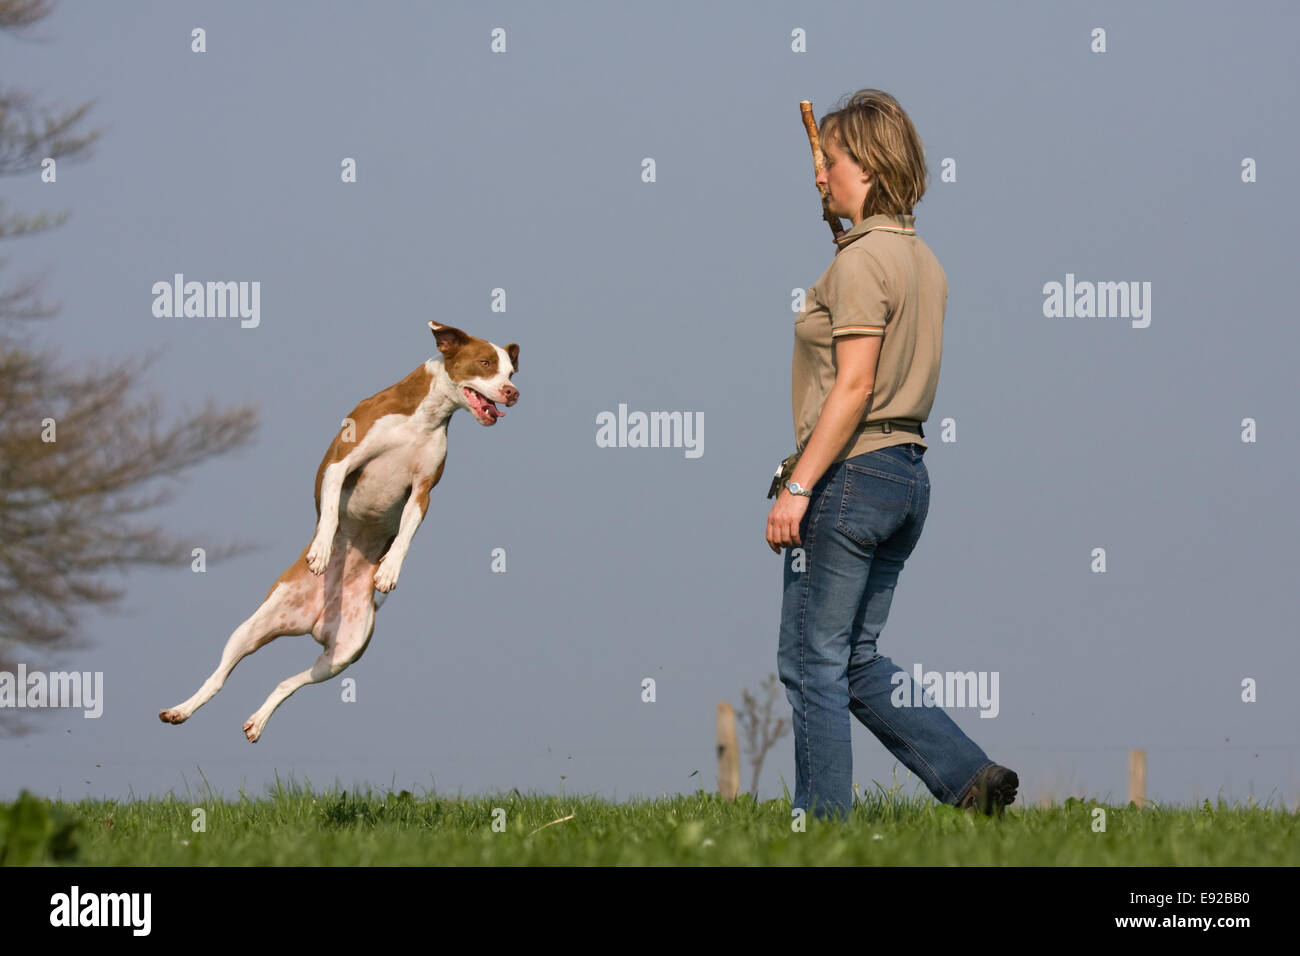 young woman practise tricks with her dog - Stock Image